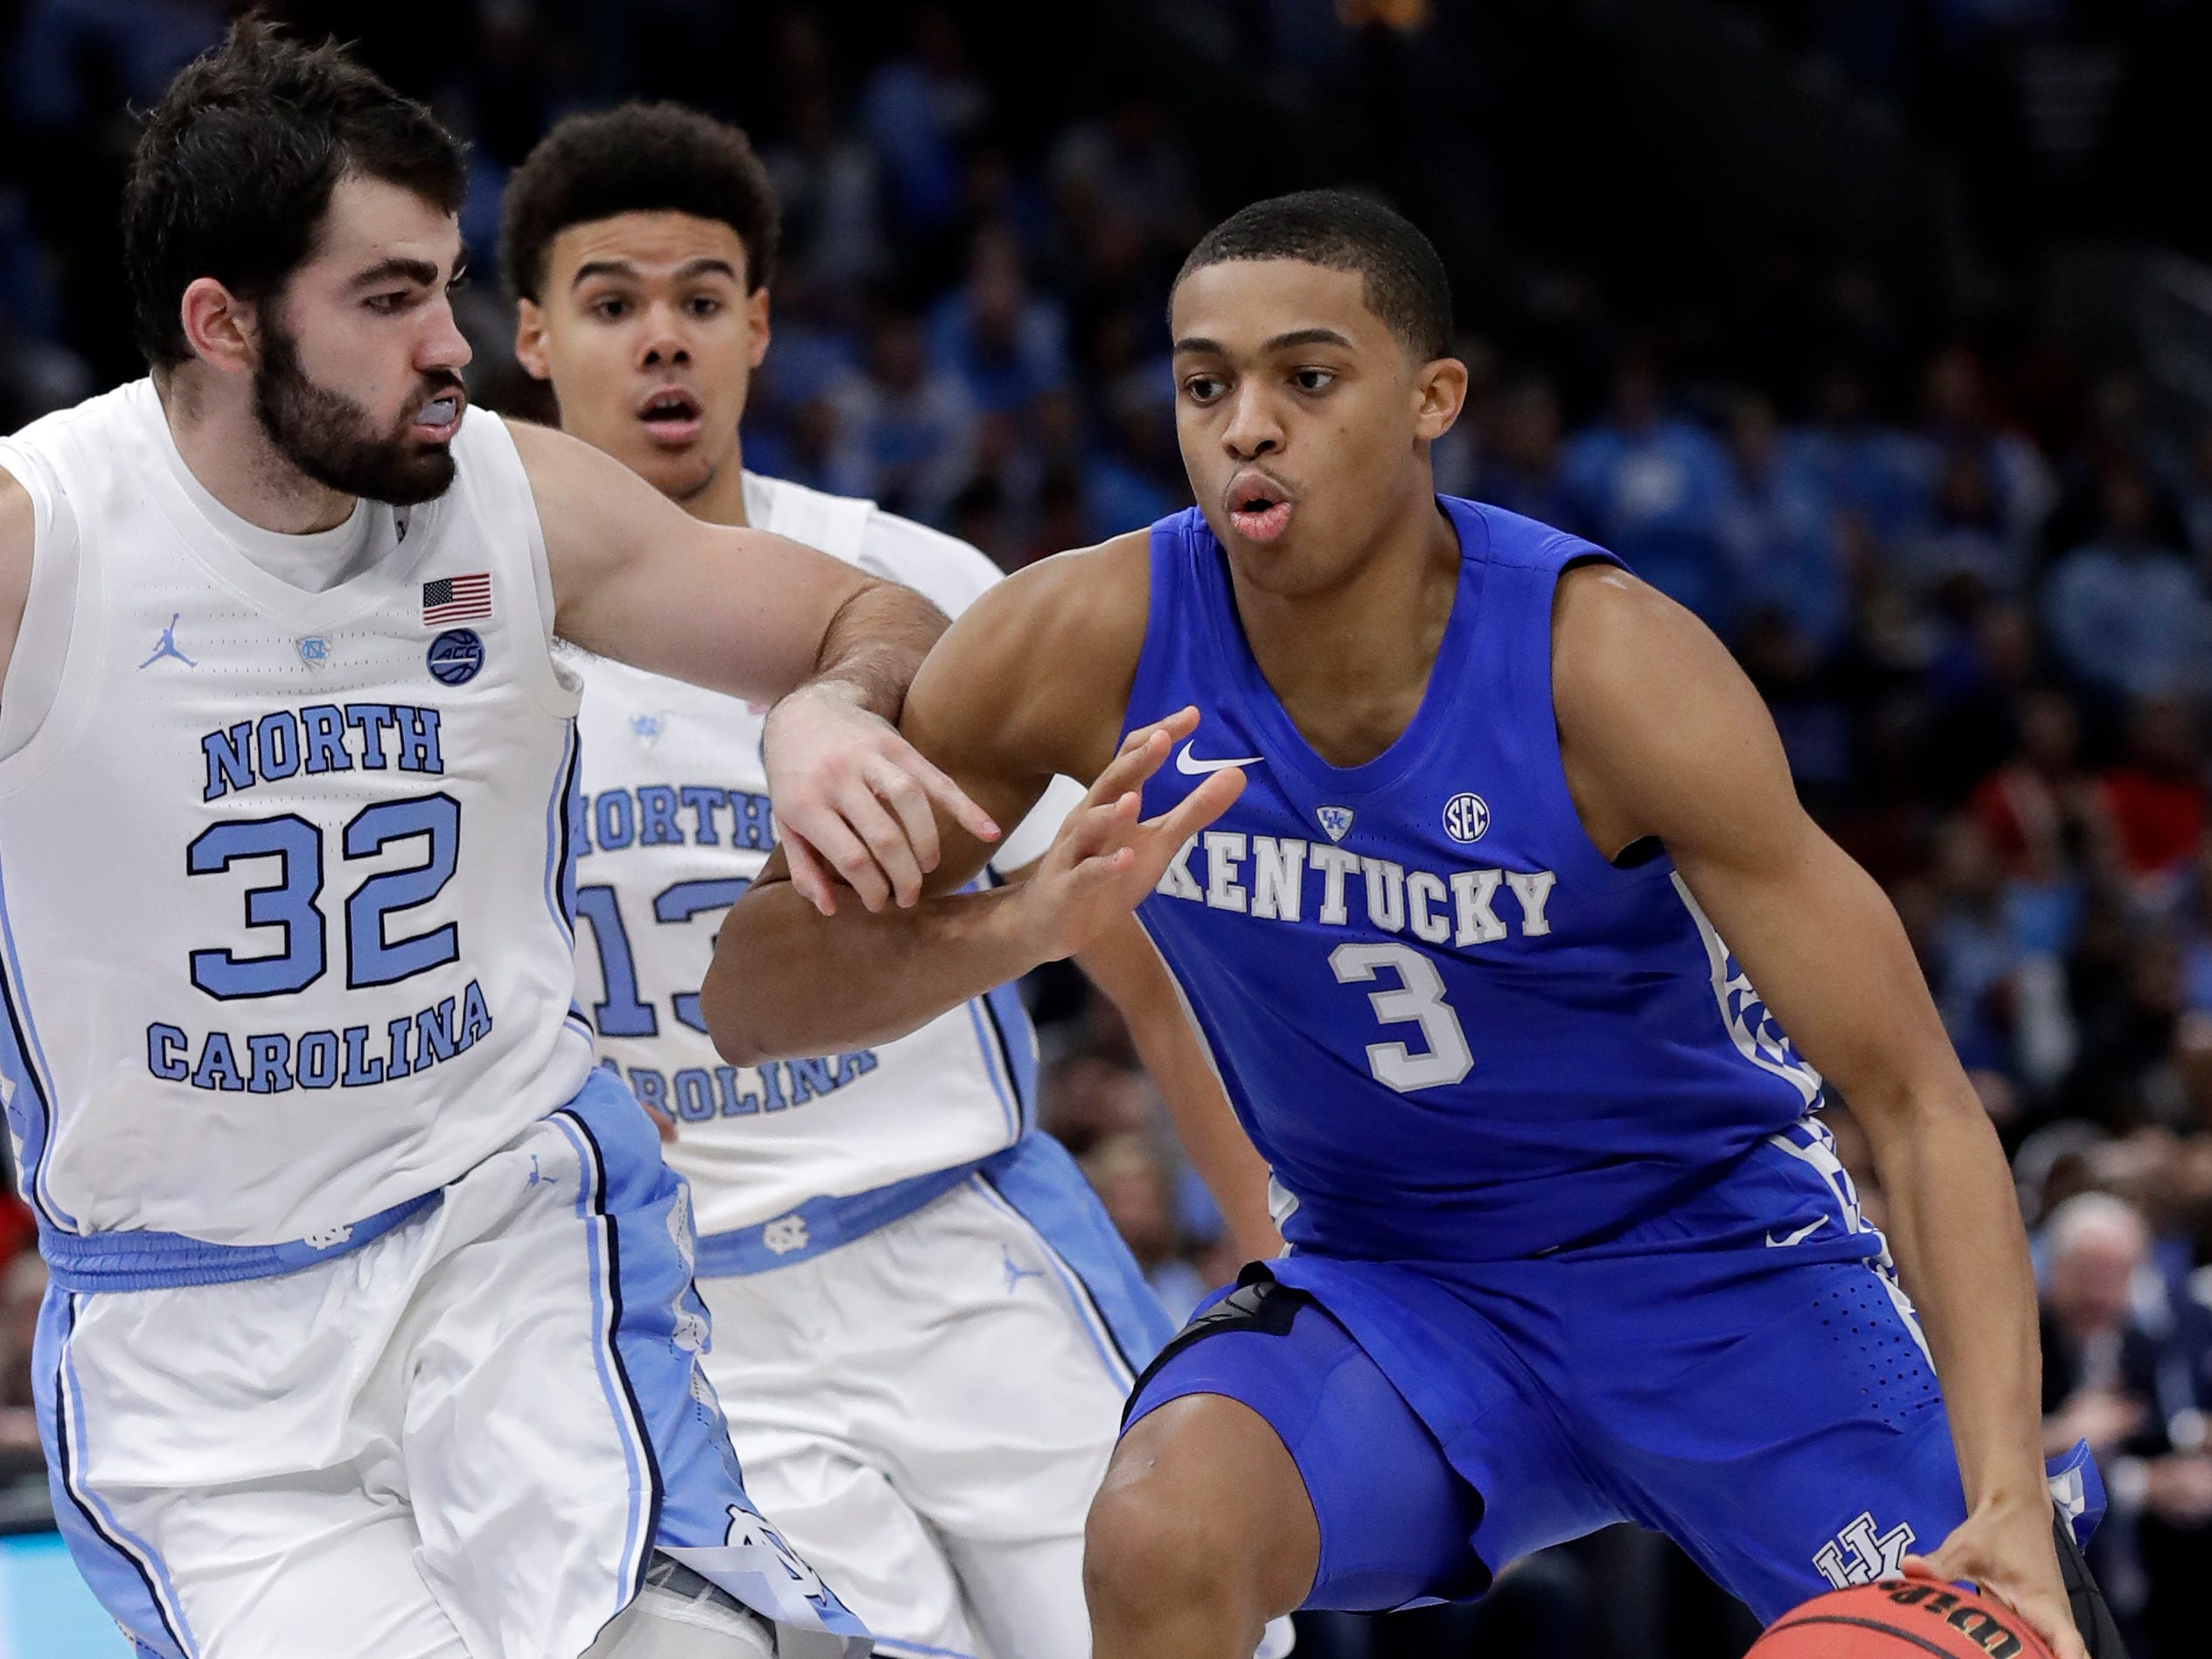 Kentucky guard Keldon Johnson, right, drives against North Carolina forward Luke Maye during the second half of an NCAA college basketball game in the fifth annual CBS Sports Classic, Saturday, Dec. 22, 2018, in Chicago.